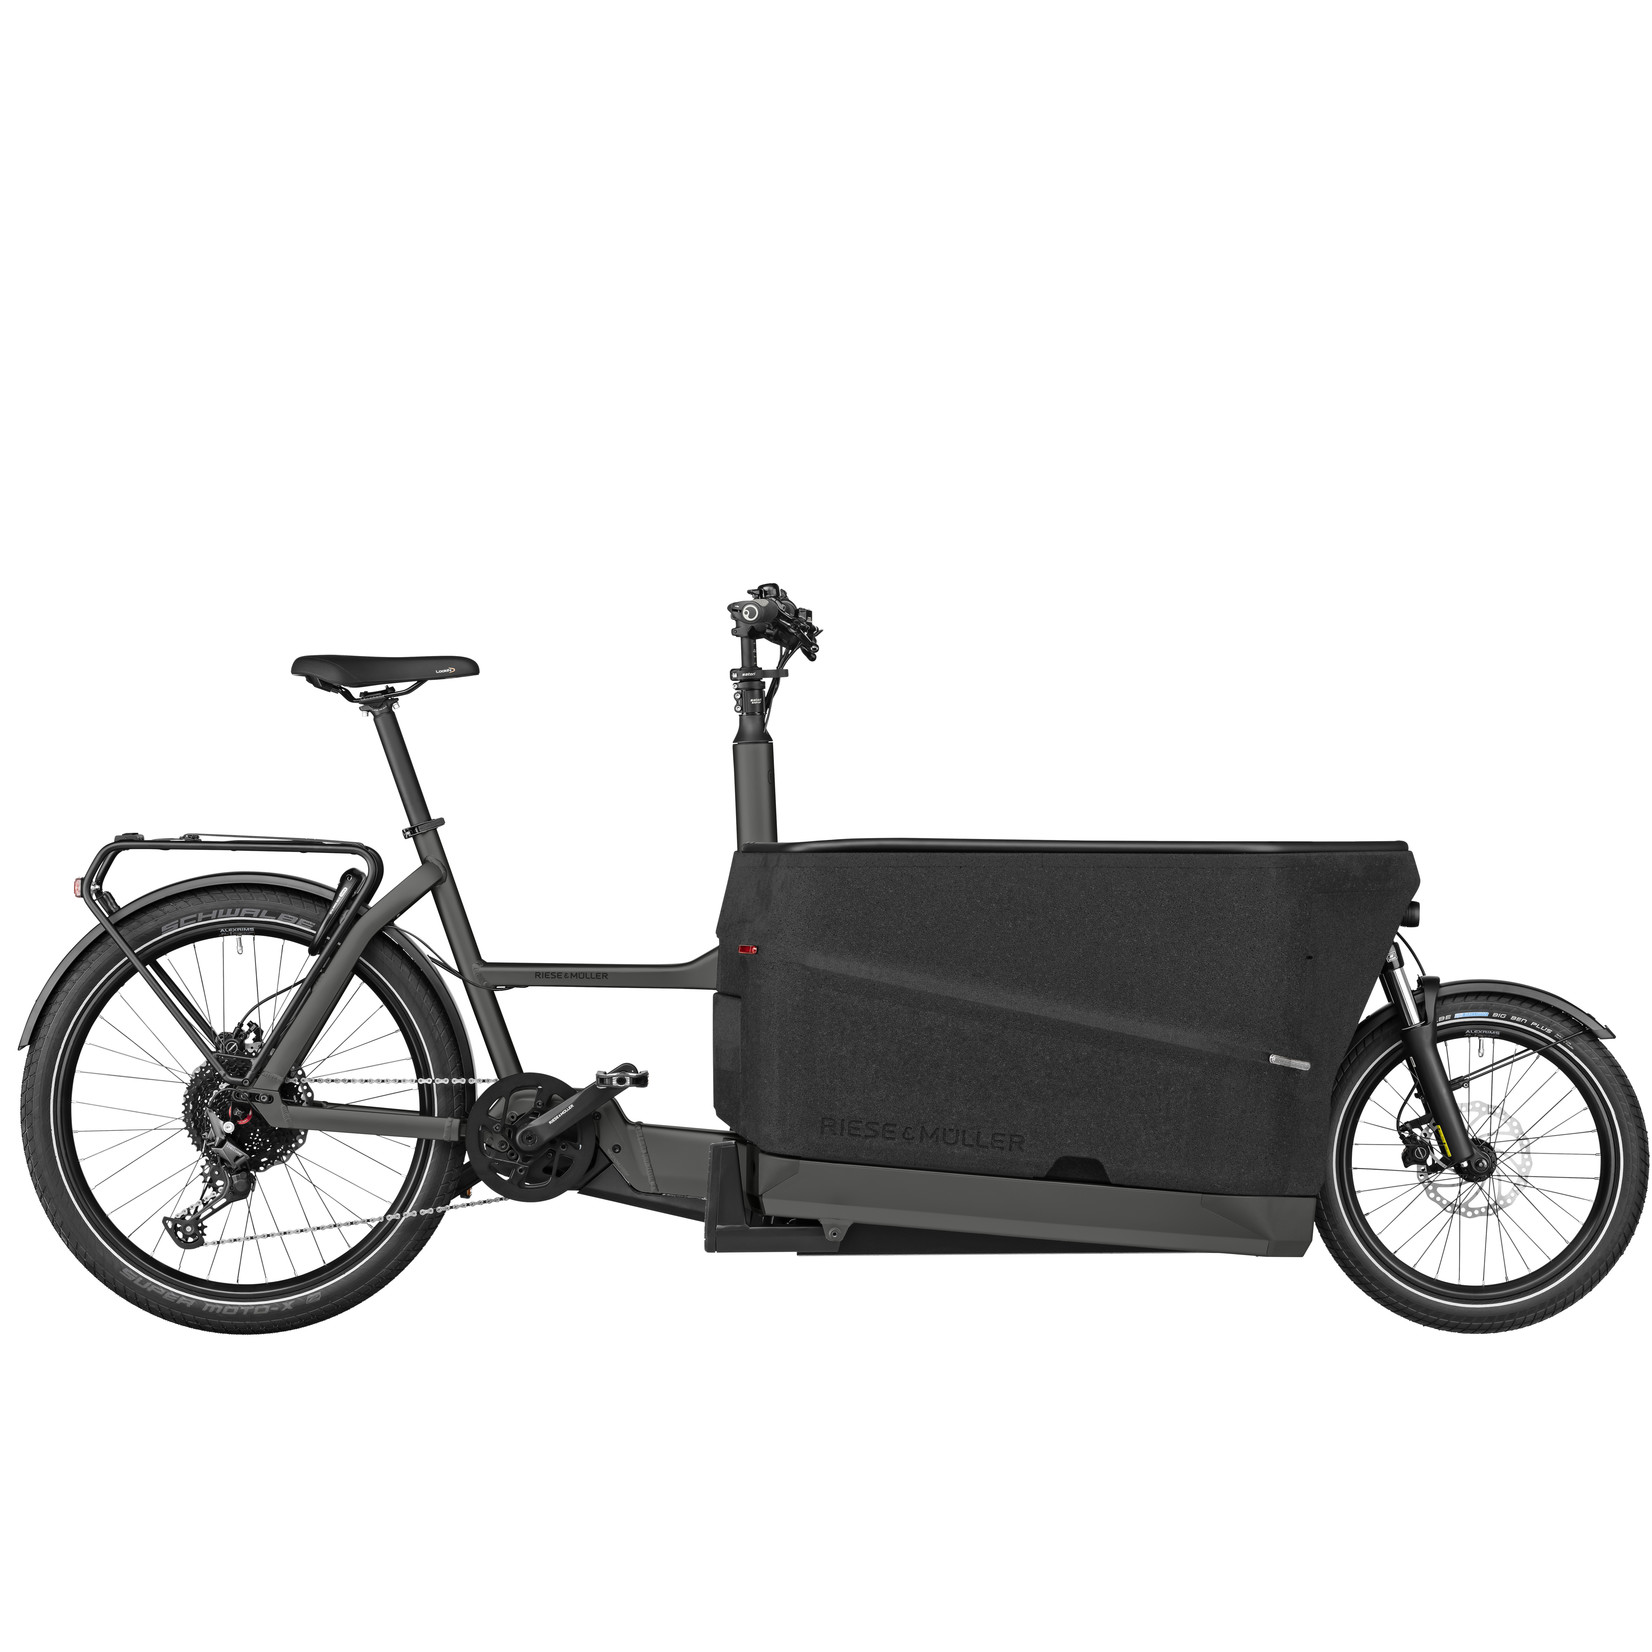 Riese & Muller Riese & Müller, Packster 70 touring